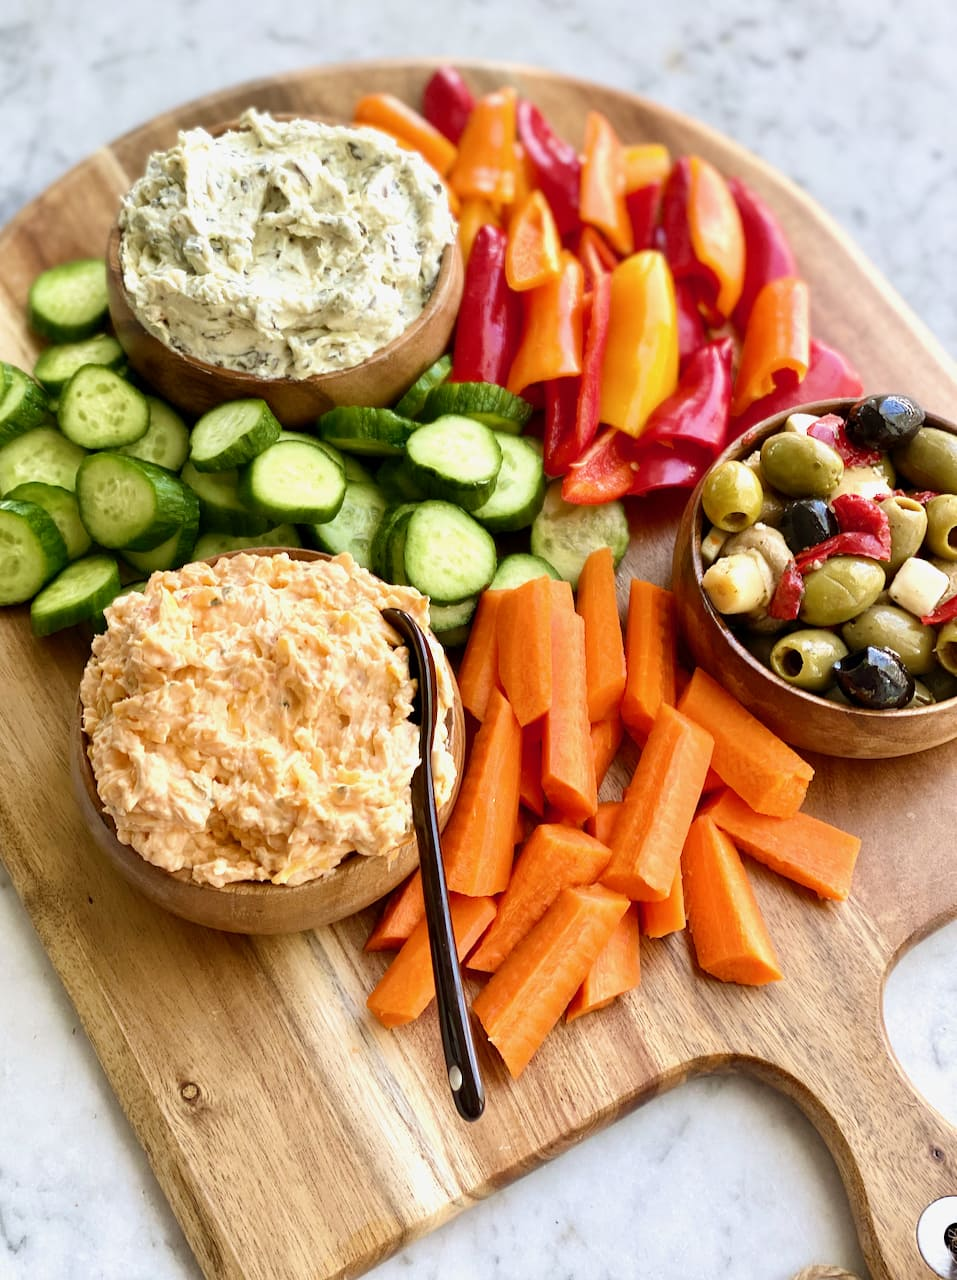 three types of dips with carrots, cucumbers and peppers on a wooden board